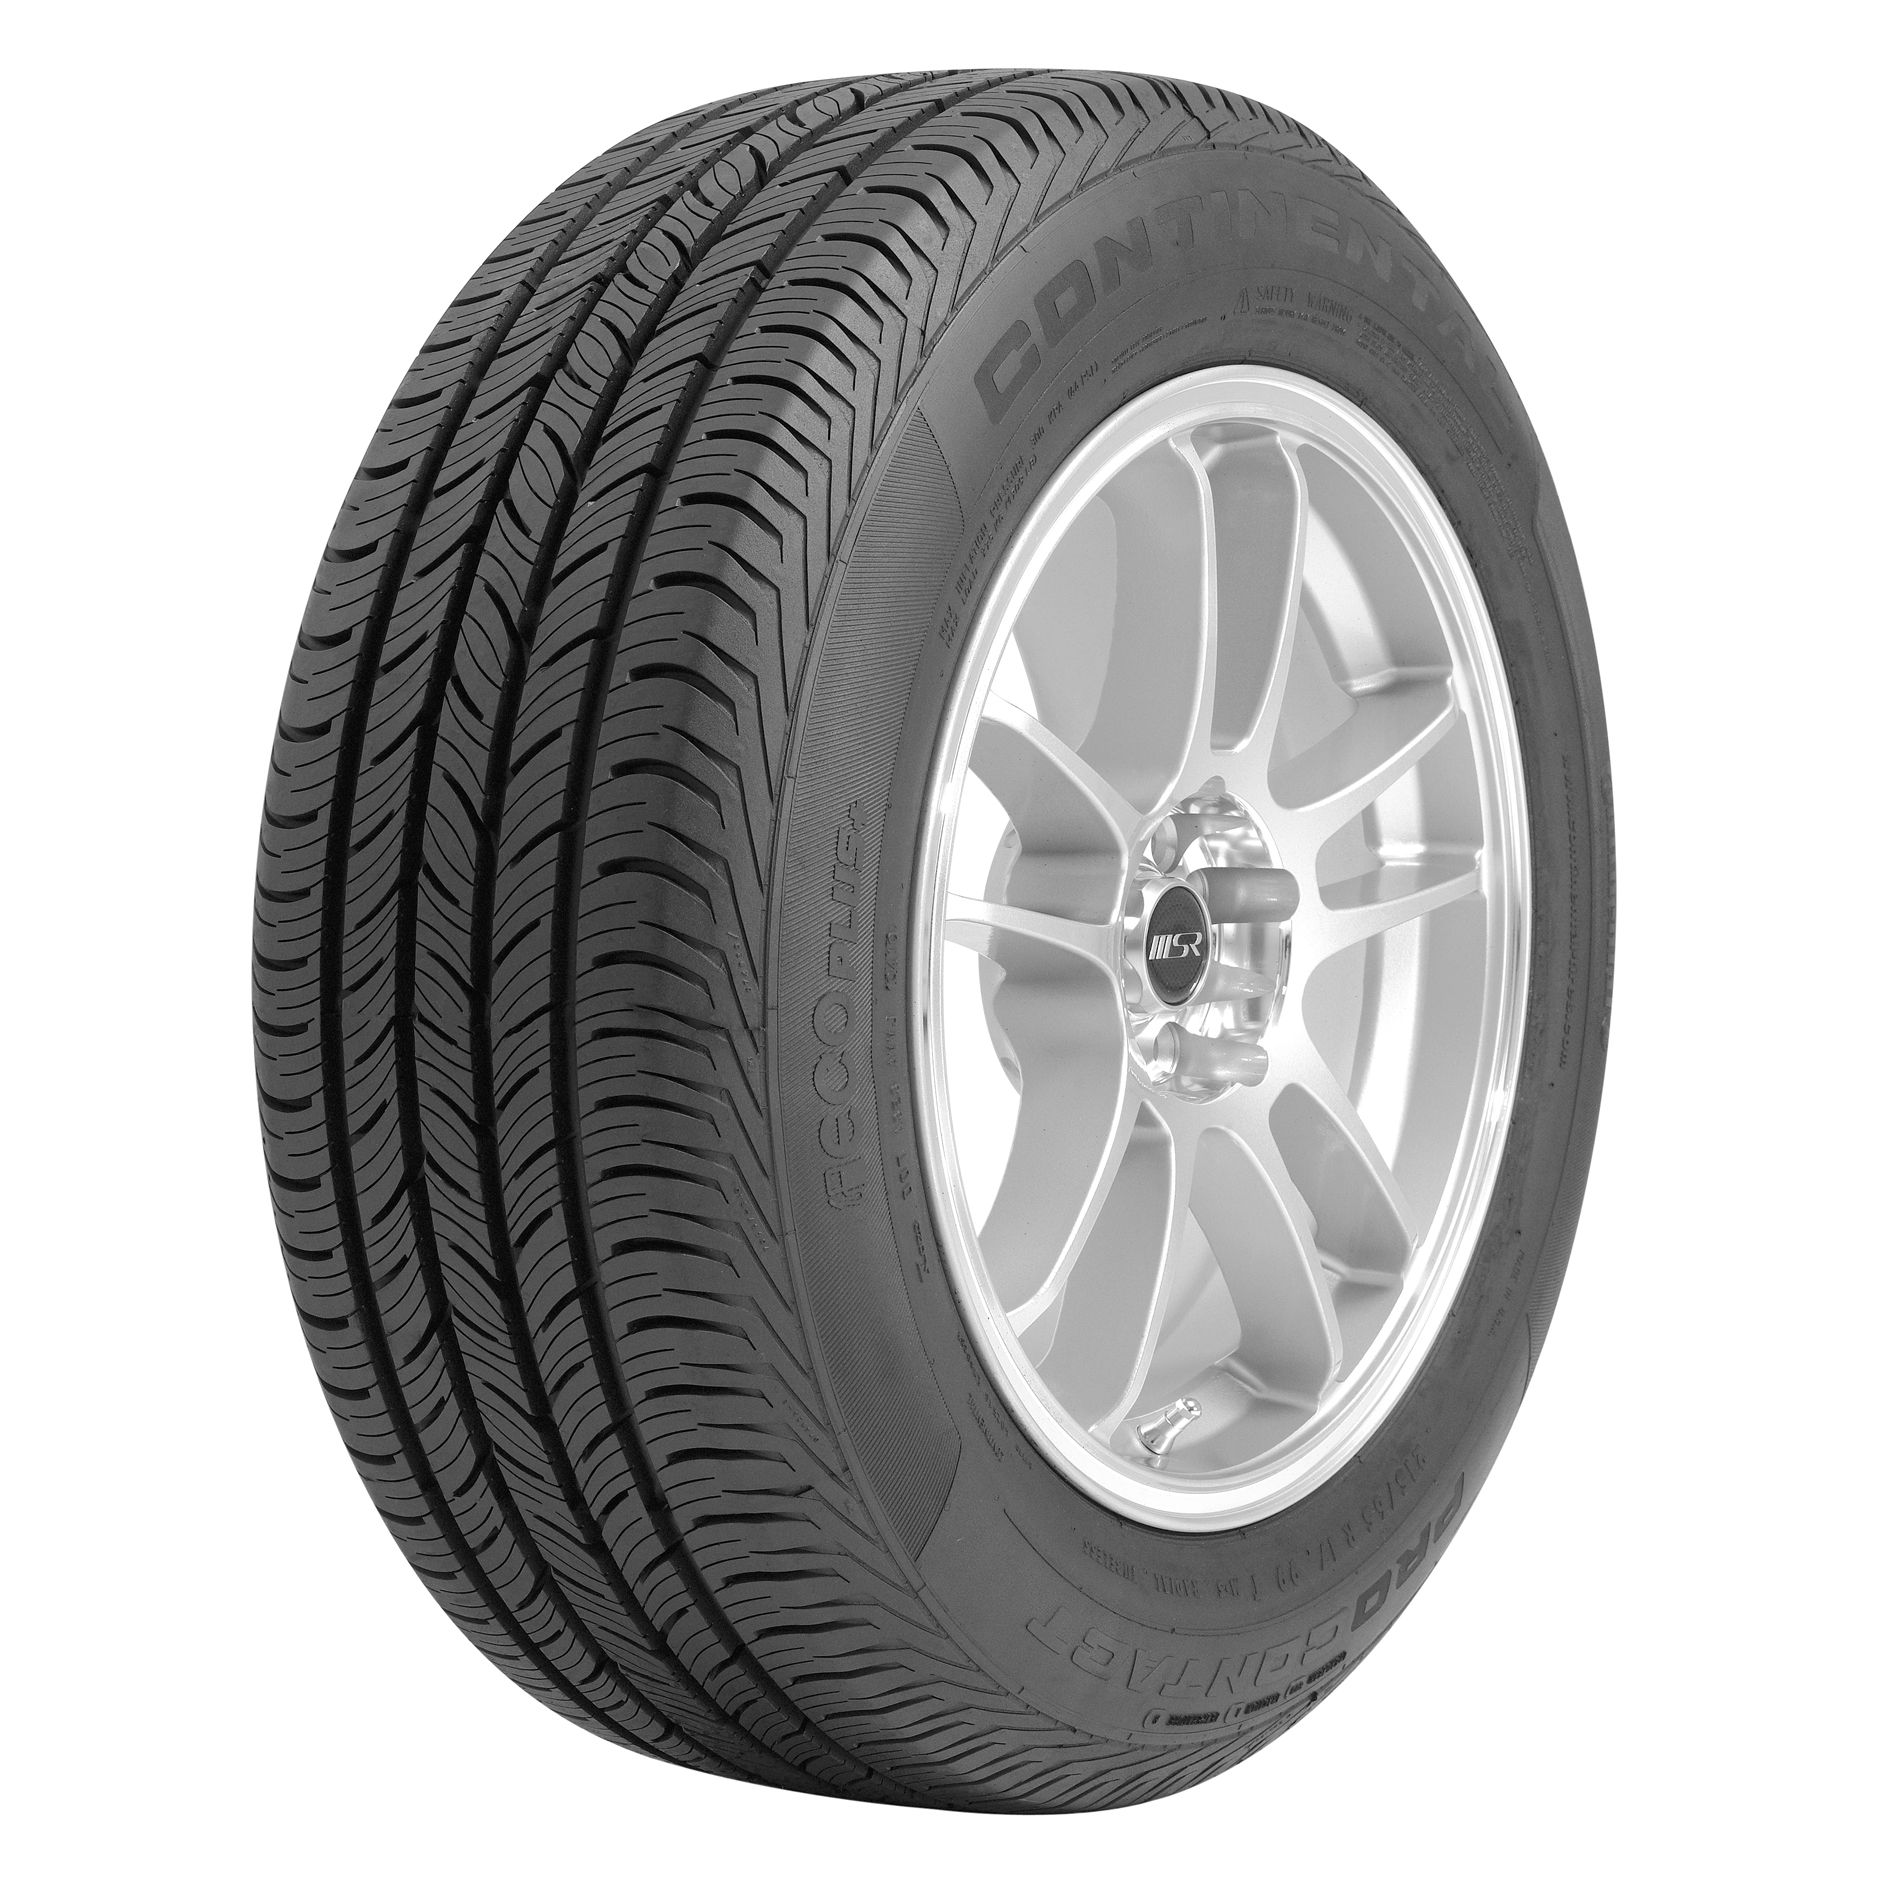 Continental Pro Contact Eco Plus - 185/65R15 88T BW - All-Season Tire